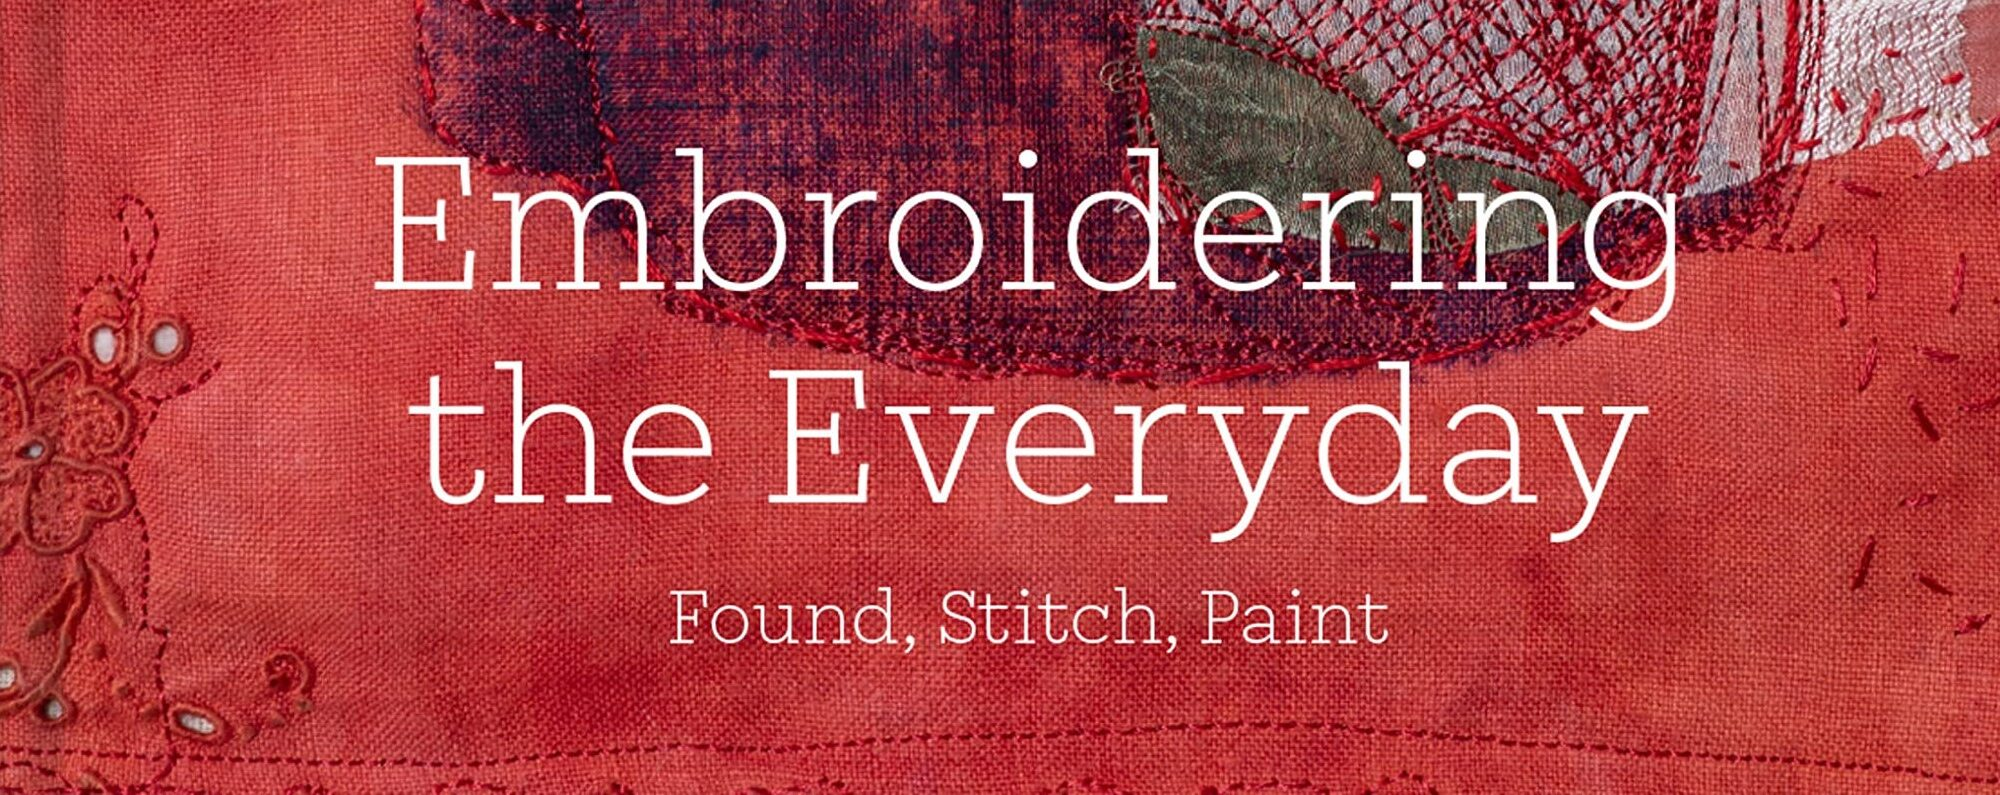 Embroidering the Everyday book cover - wording